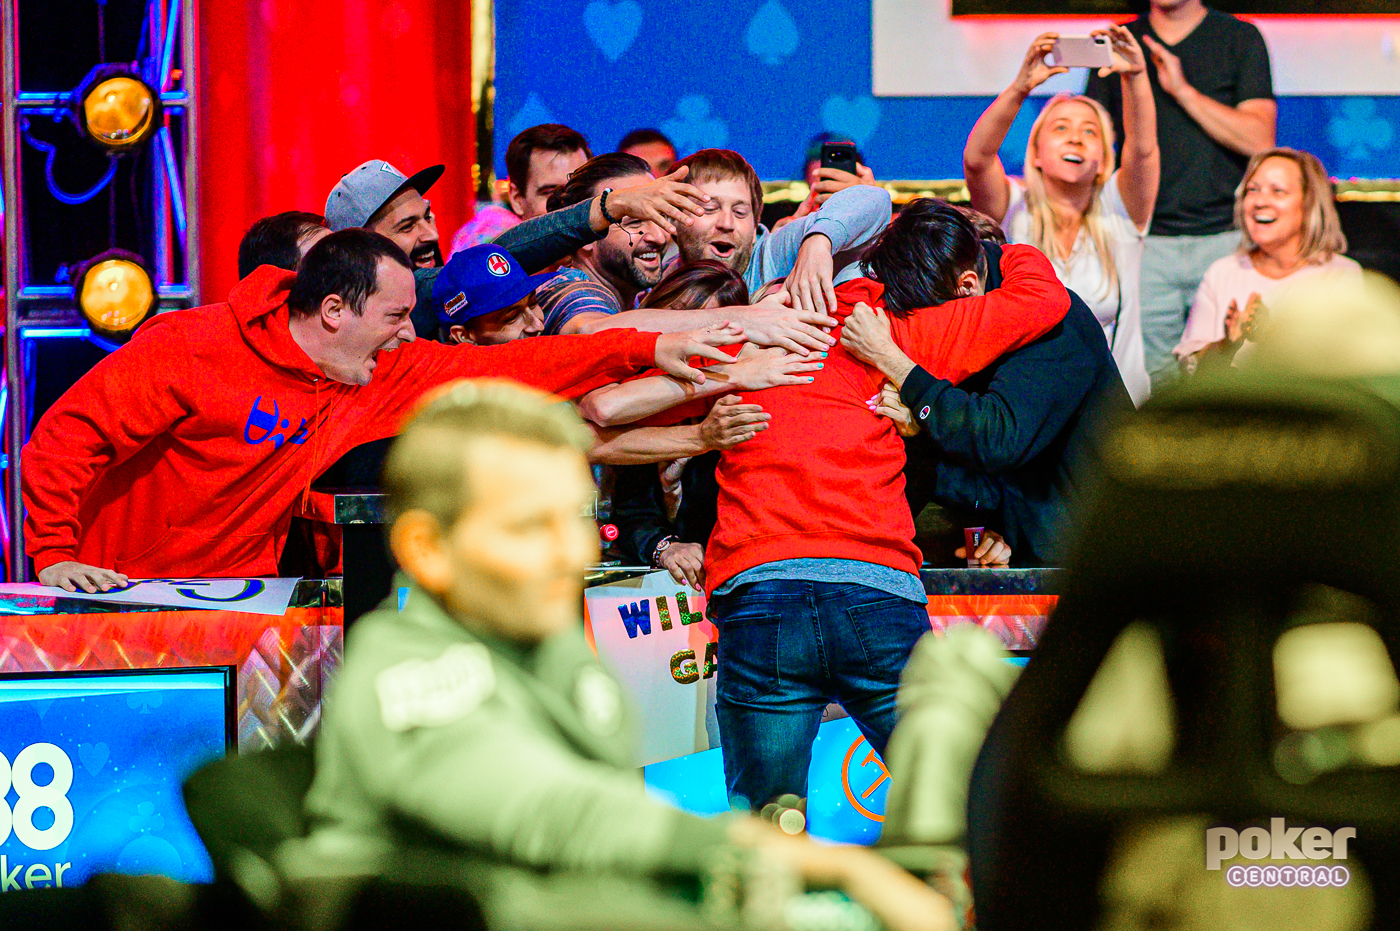 Garry Gates jumps into the arms of his friends and girlfriend celebrating after a big pot.